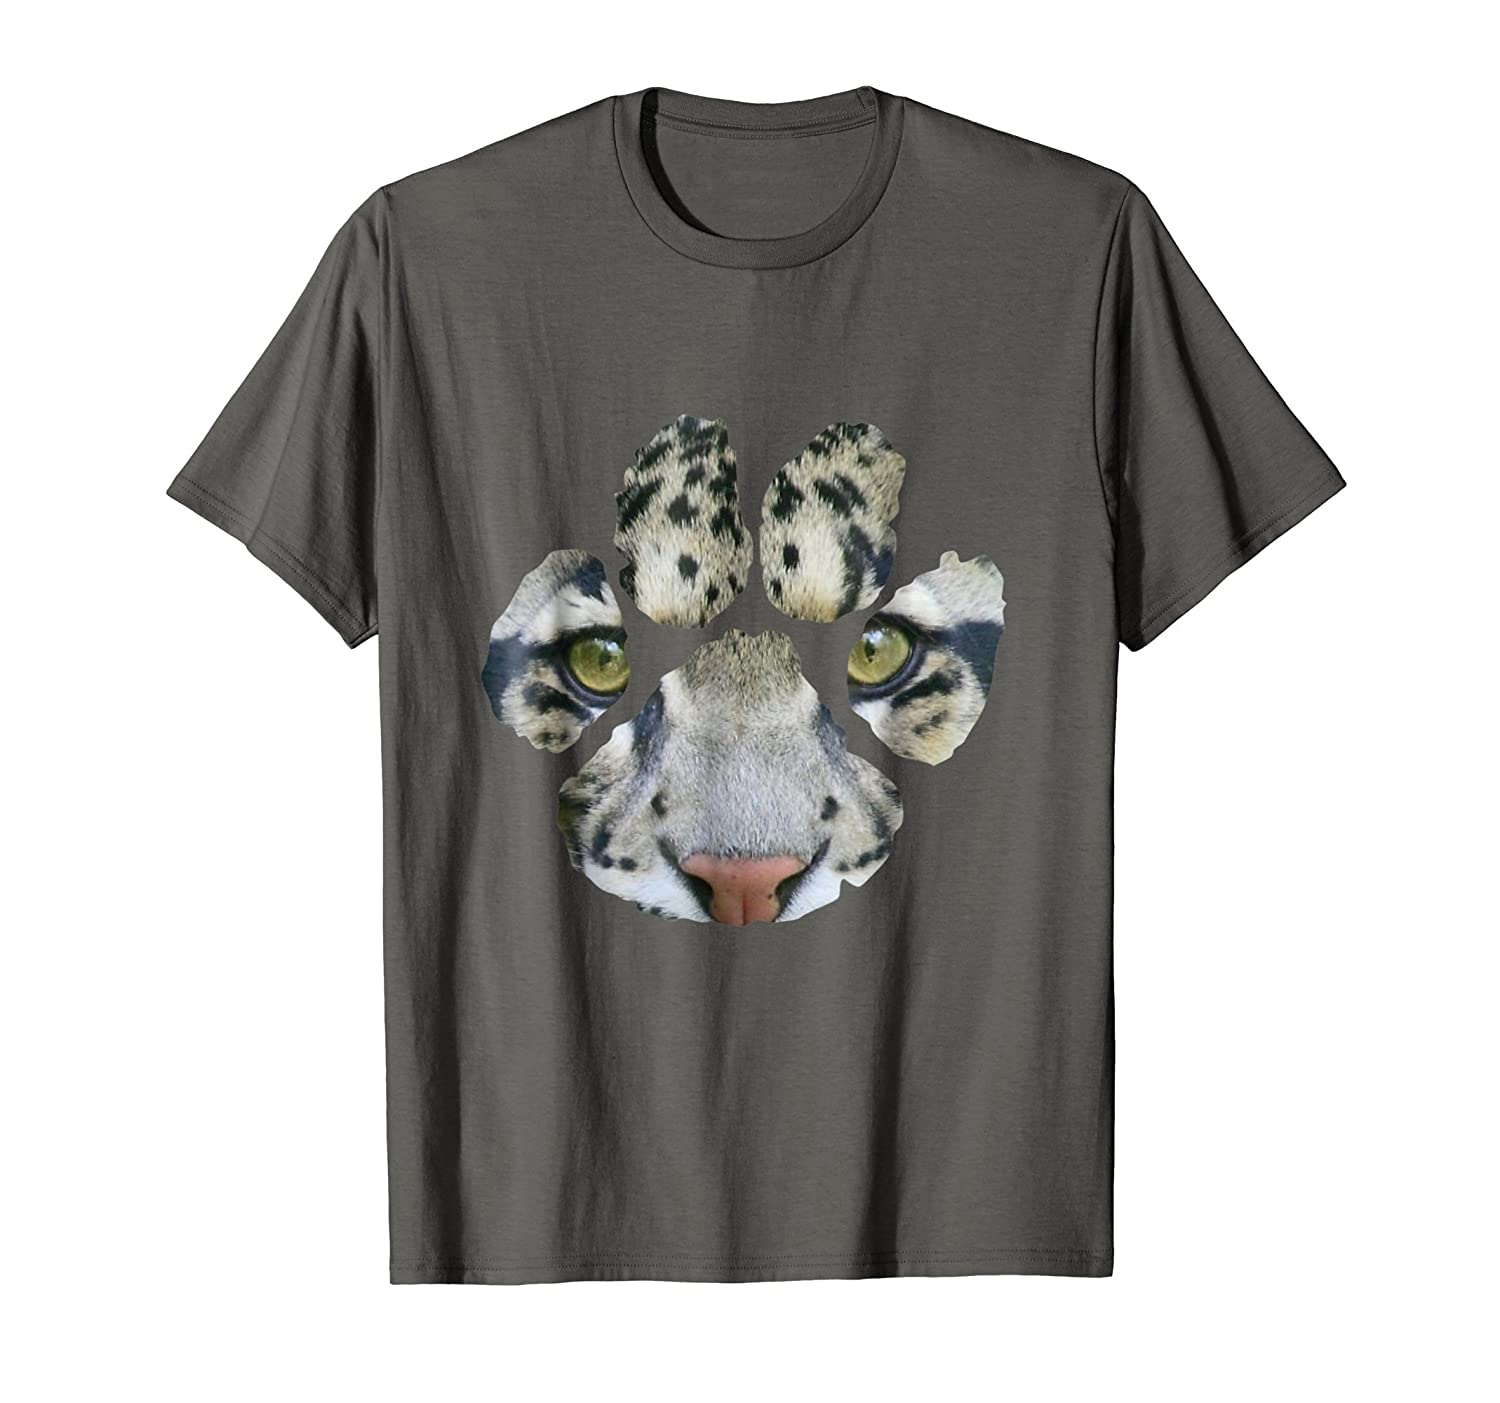 Awesome Clouded Leopard Paw Print T-Shirt - Mens/Womens/Kids-AZP